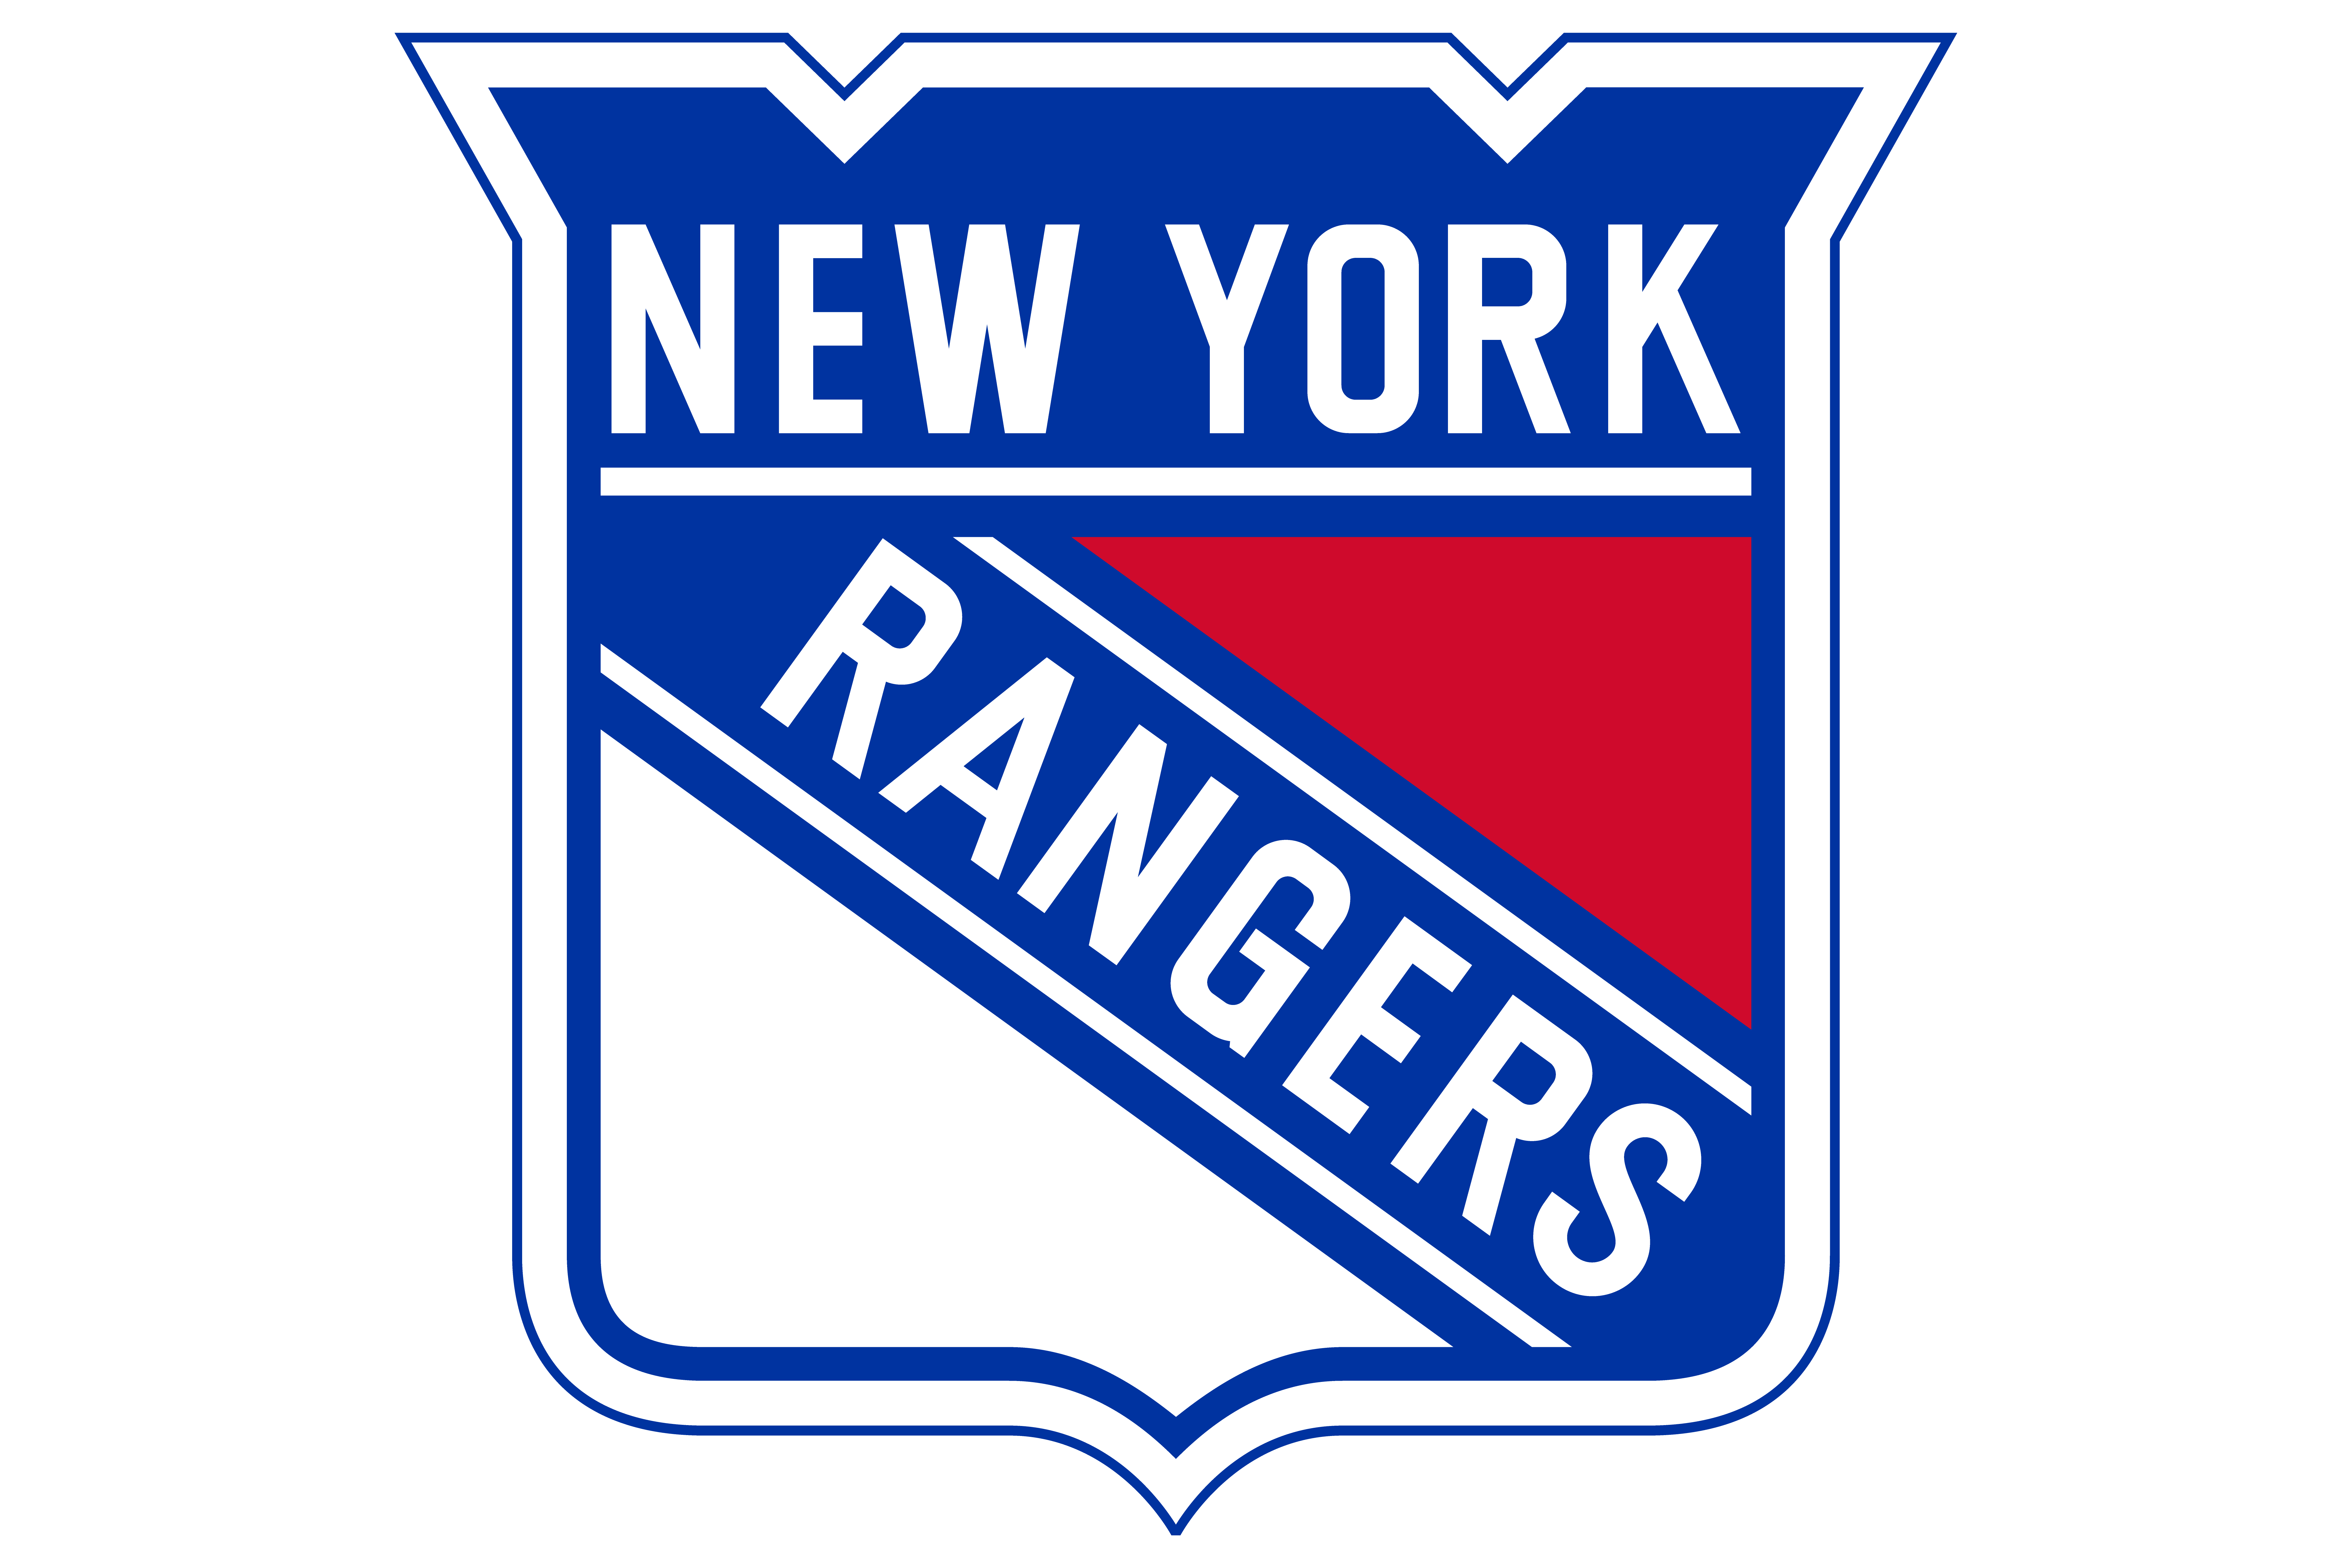 28 New York Rangers Hd Wallpapers Background Images Wallpaper